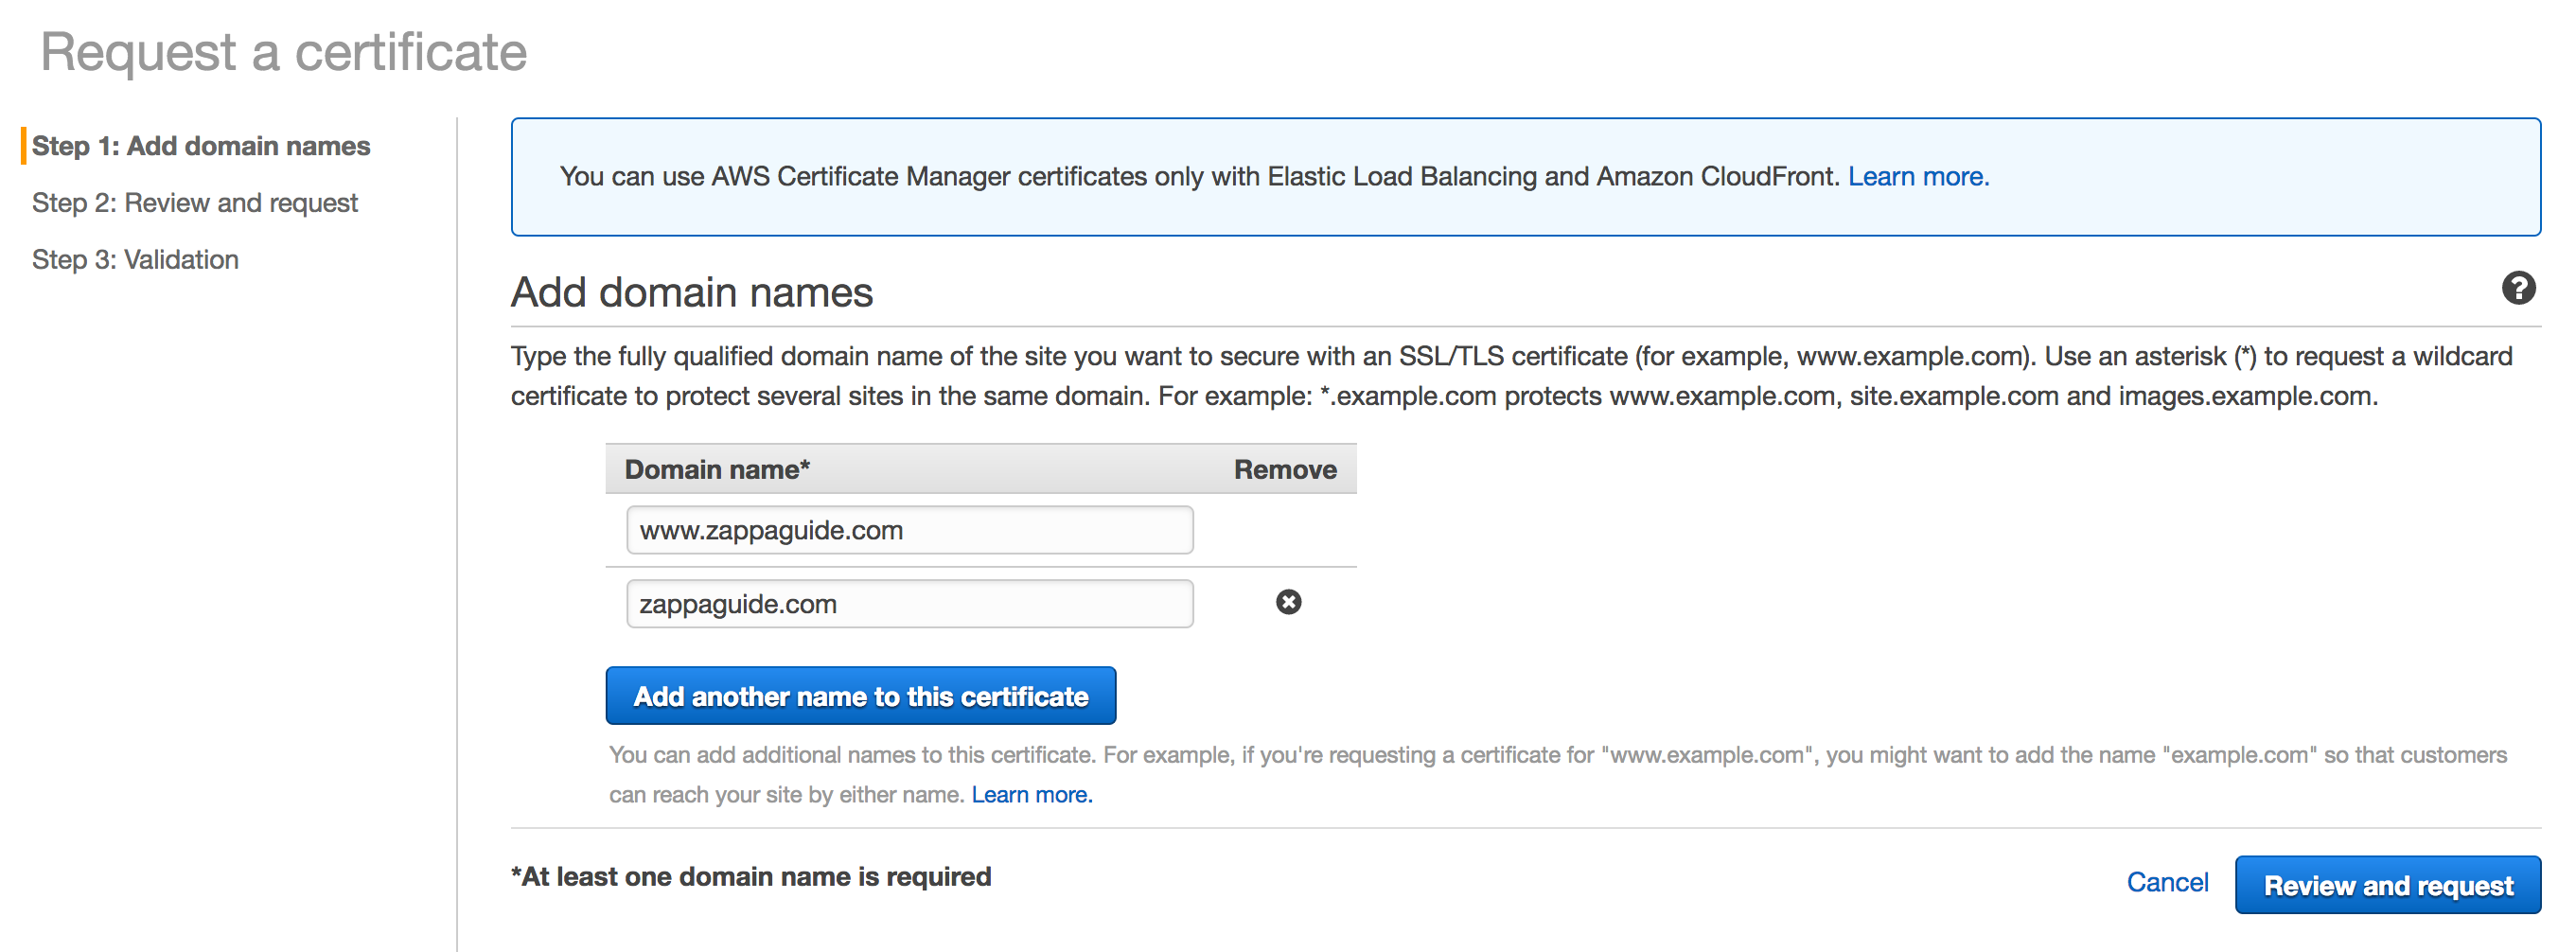 Aws credential manager acm guide to using django with zappa request a certificate xflitez Image collections